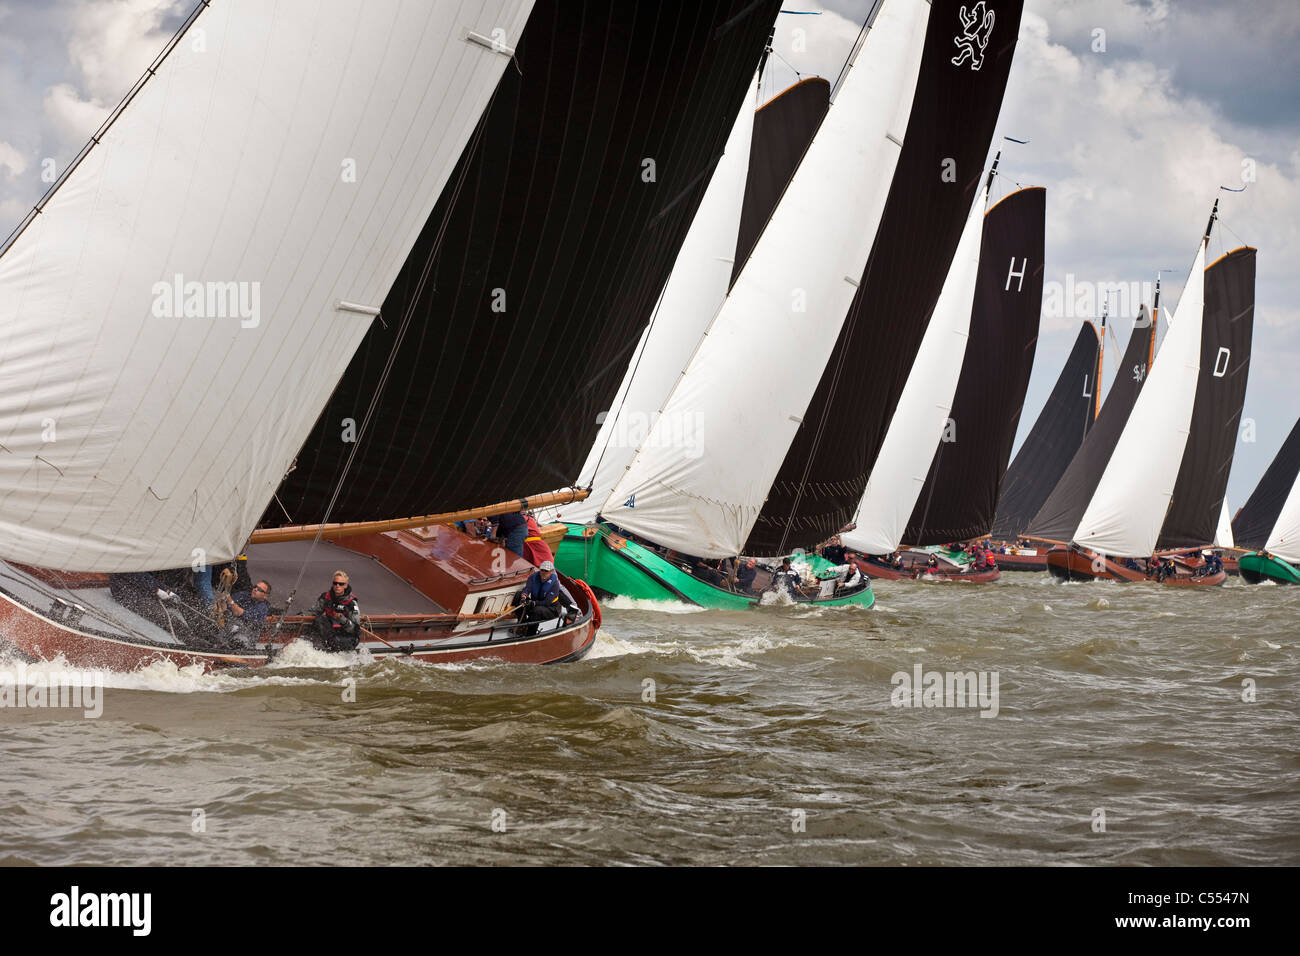 The Netherlands, Lemmer, Sailing races called Skutsjesilen, with traditional flat bottomed cargo boats called Skutsjes. - Stock Image